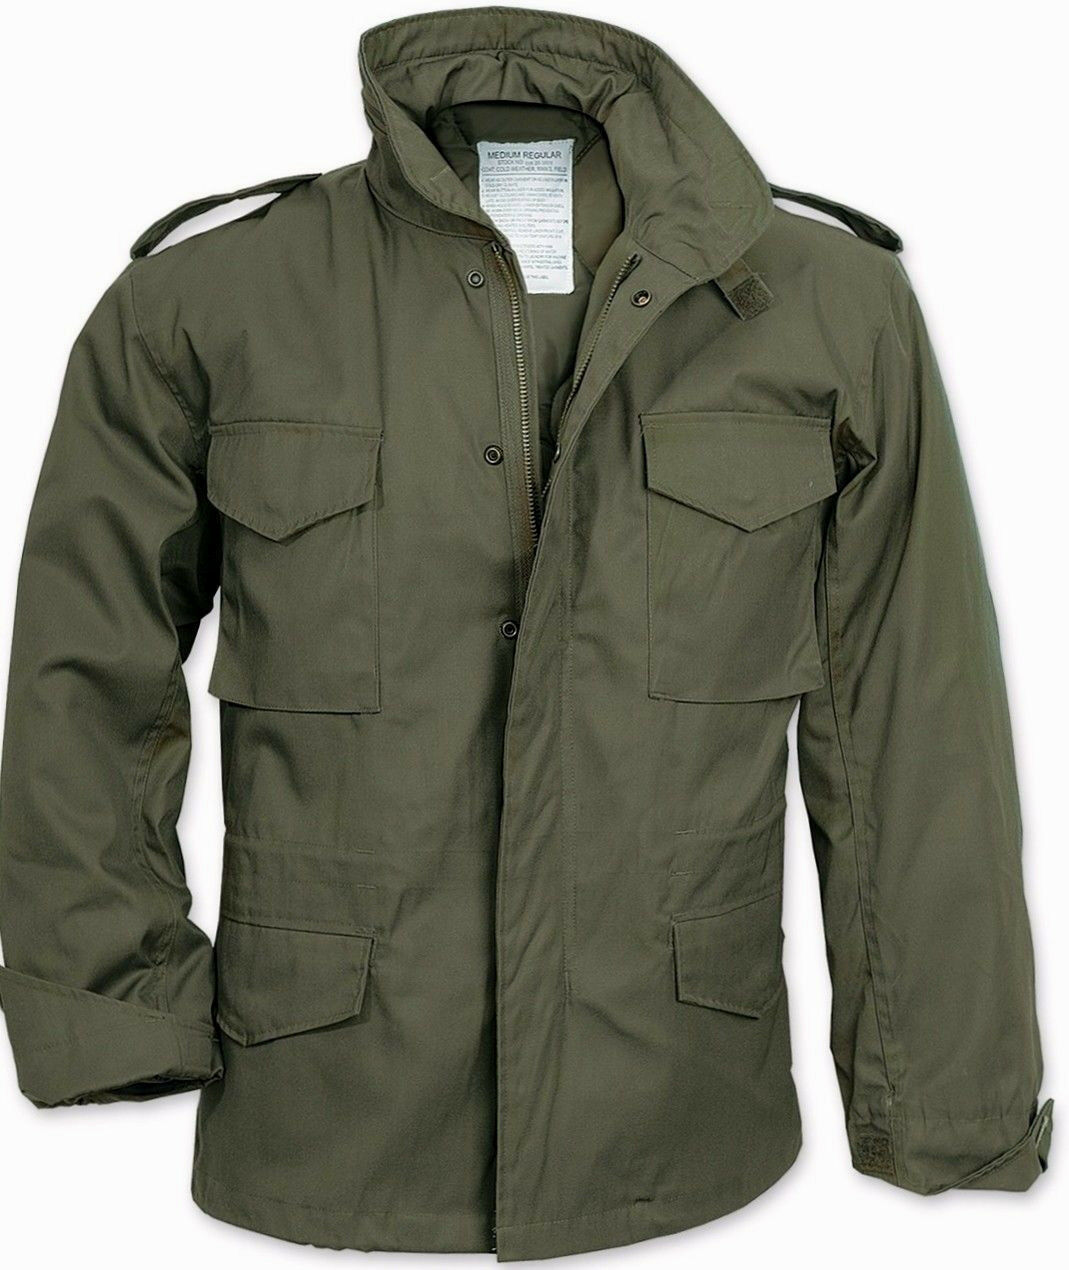 M-65 Field Jacket Olive Drab OD GREEN US Army Marine Corps N